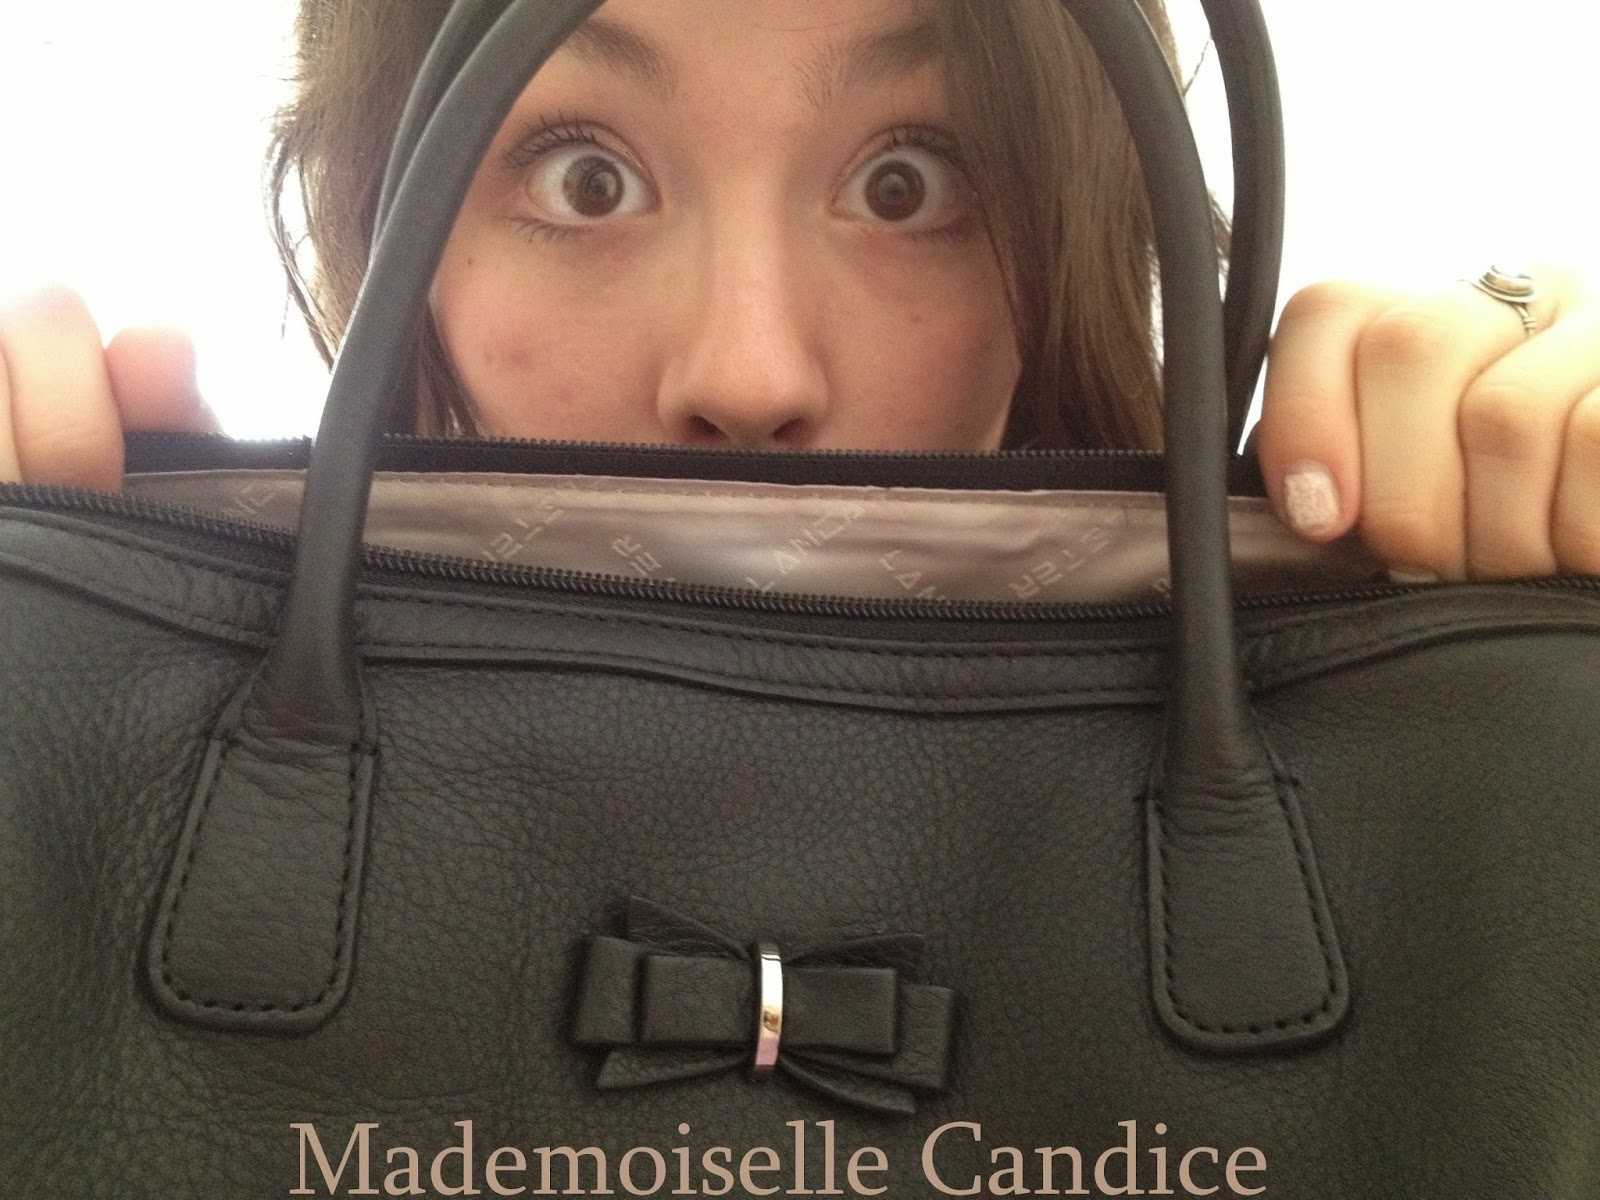 Connu Flavour beans: My pretty bag: Mademoiselle Candice by Lancaster JI12